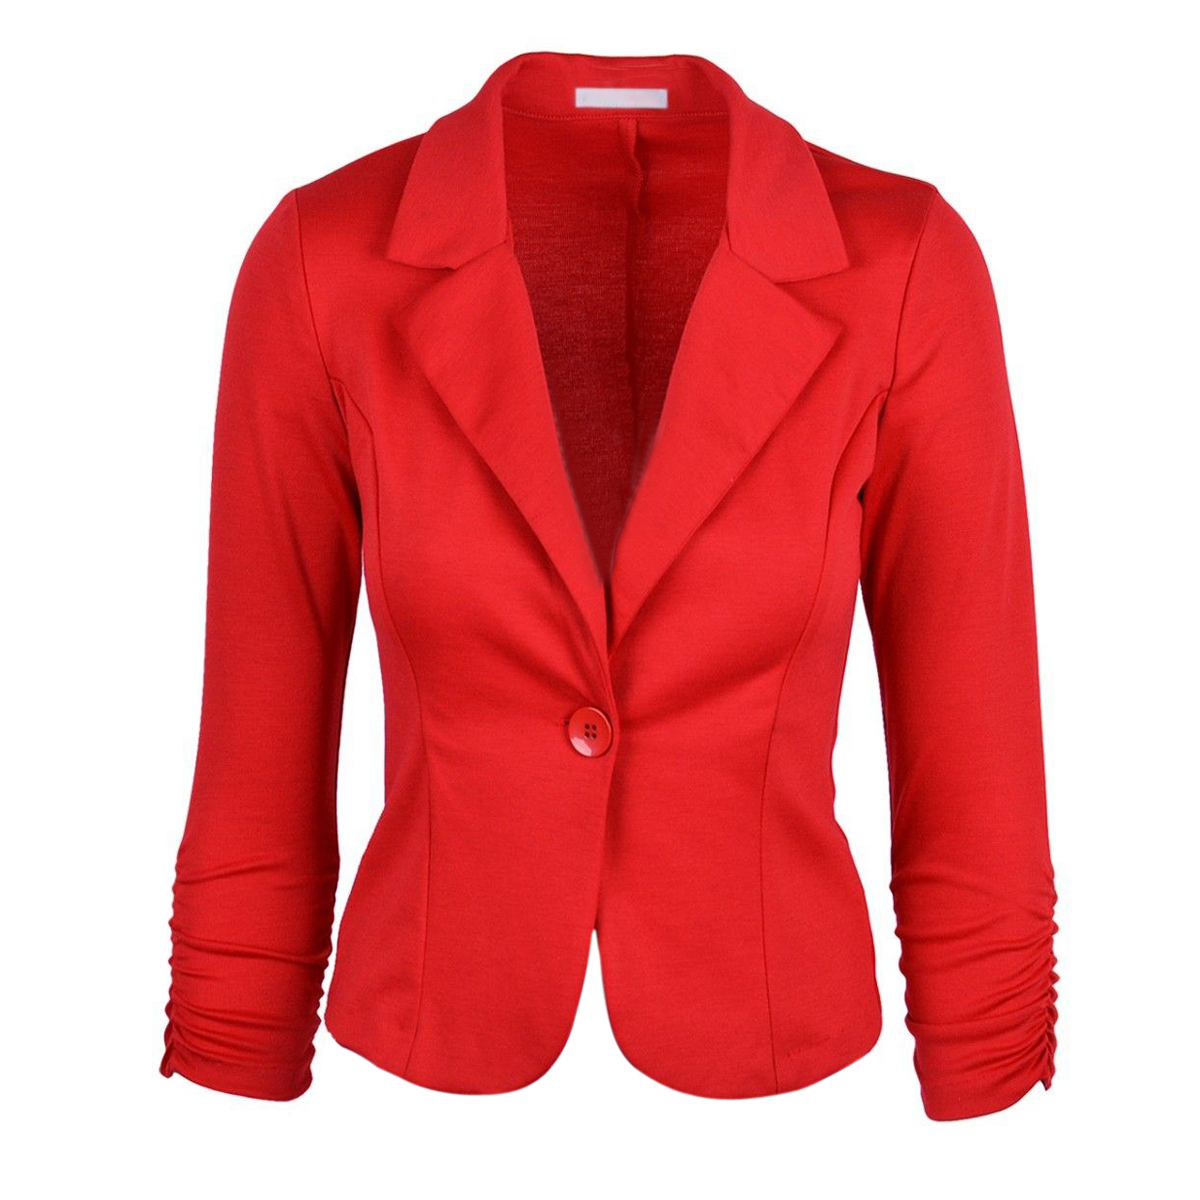 SYB 2018 NEW Womens Blazer Jacket Long Sleeve Candy Button Red